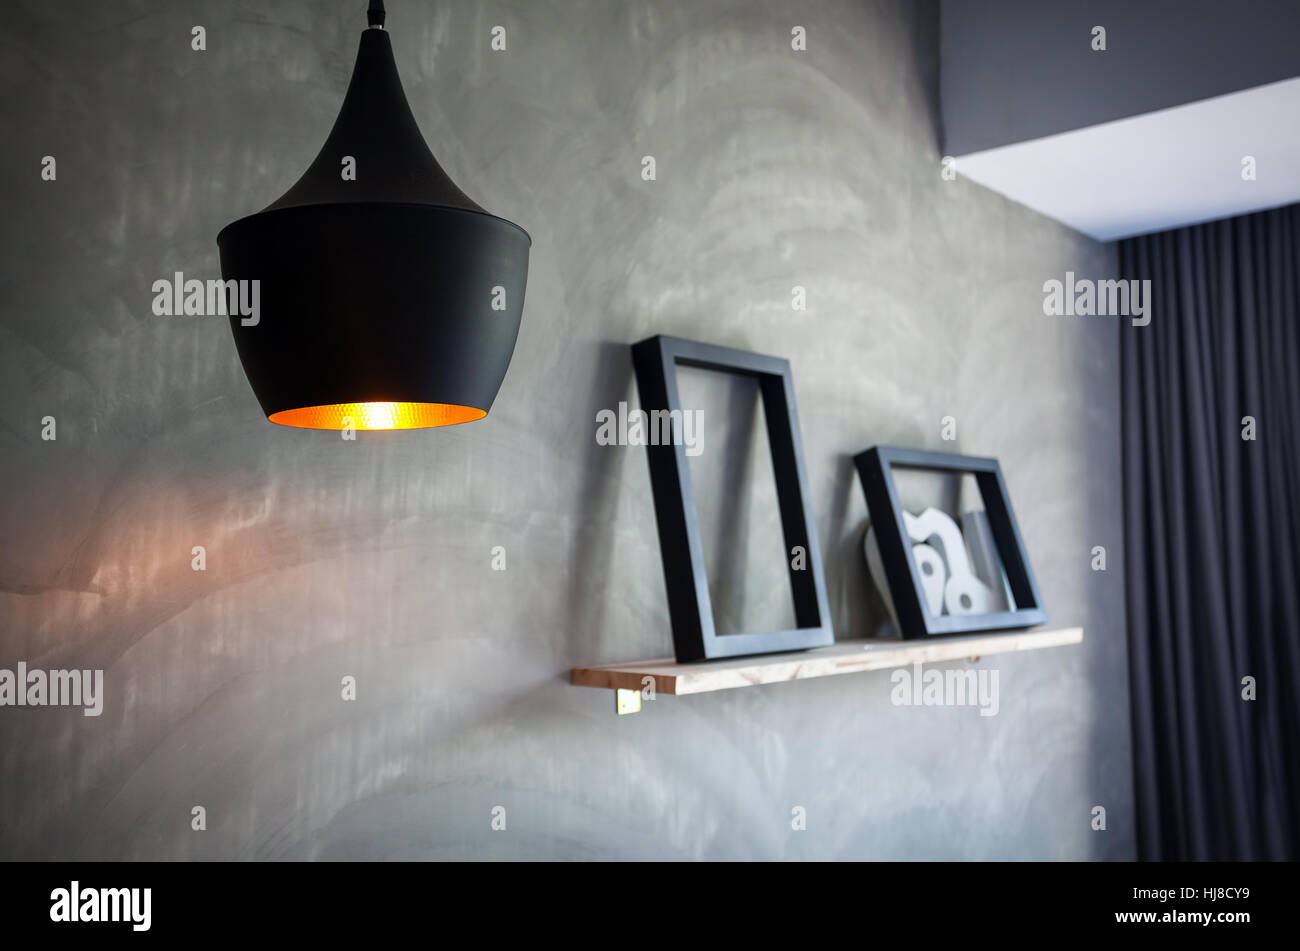 Vintage lantern in the room of loft interior - Stock Image